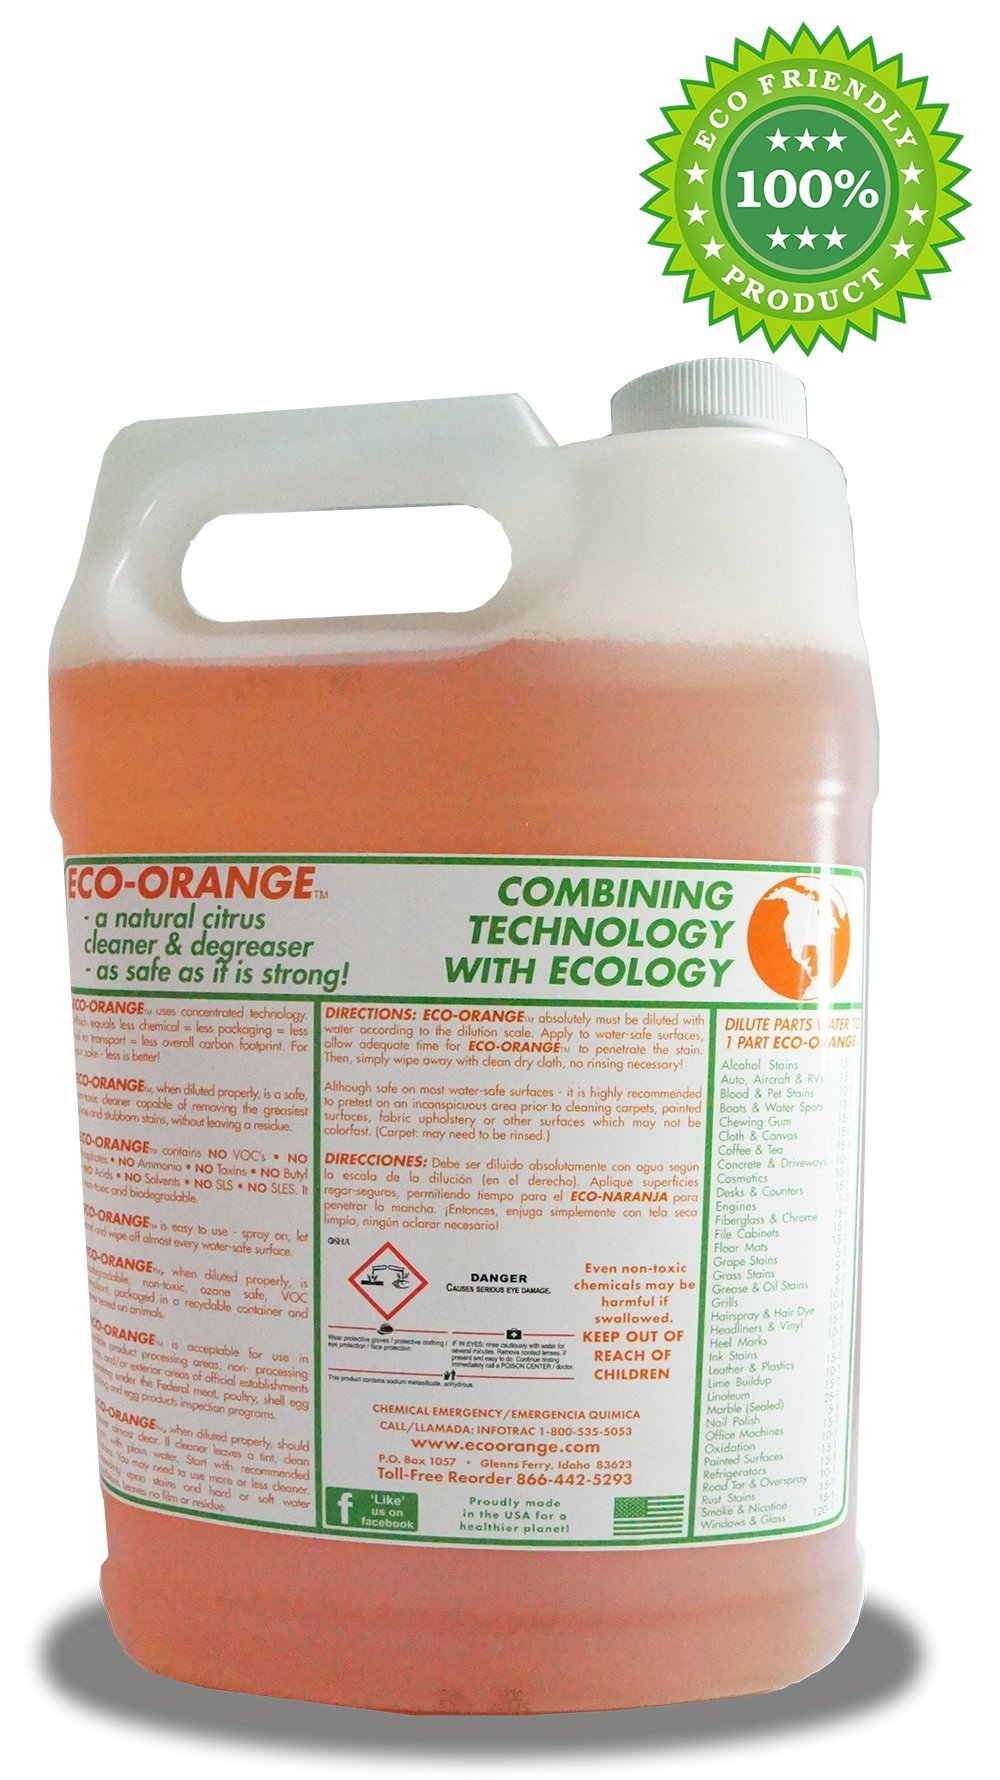 Eco Orange 1 Gallon Super Concentrate. Strongest All-Natural, All-Purpose Orange Citrus Cleaner. Makes up to 16 GALLONS after dilution. Non-Toxic, Allergy-Free, Eco-Friendly. Safe for Family, Pets. by Eco Orange (Image #4)